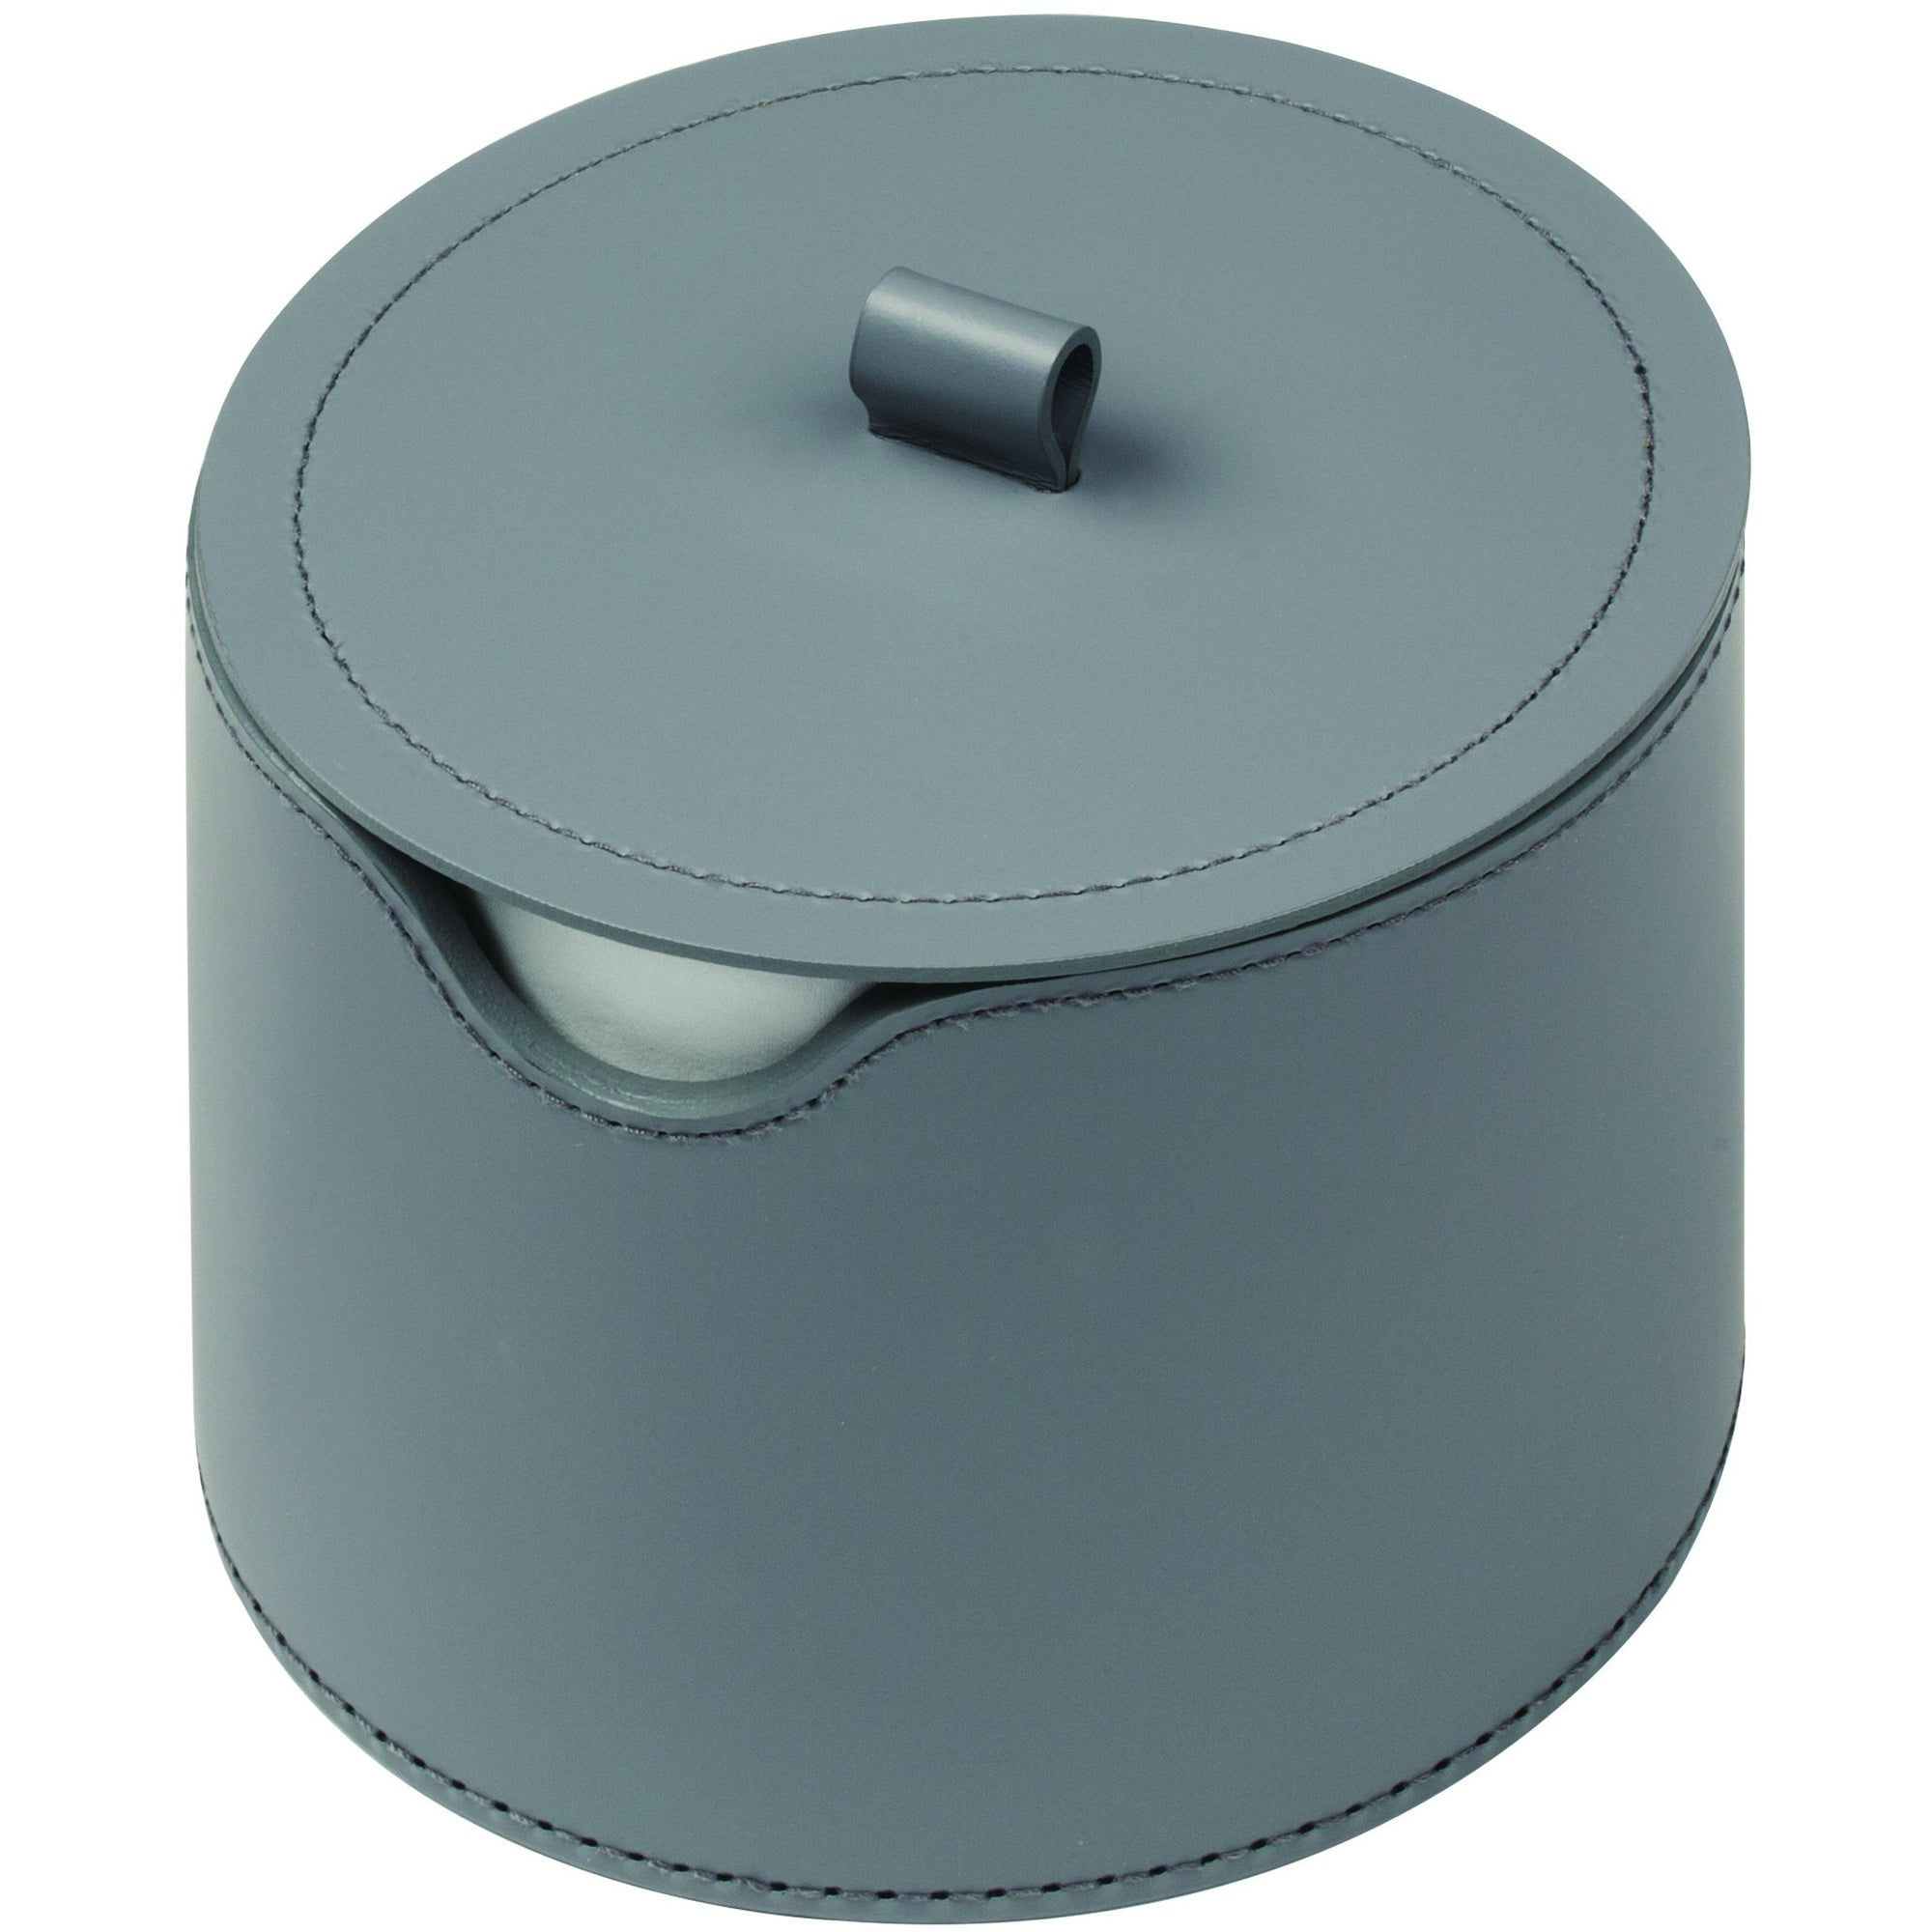 NARCISO TOILET PAPER HOLDER single with lid